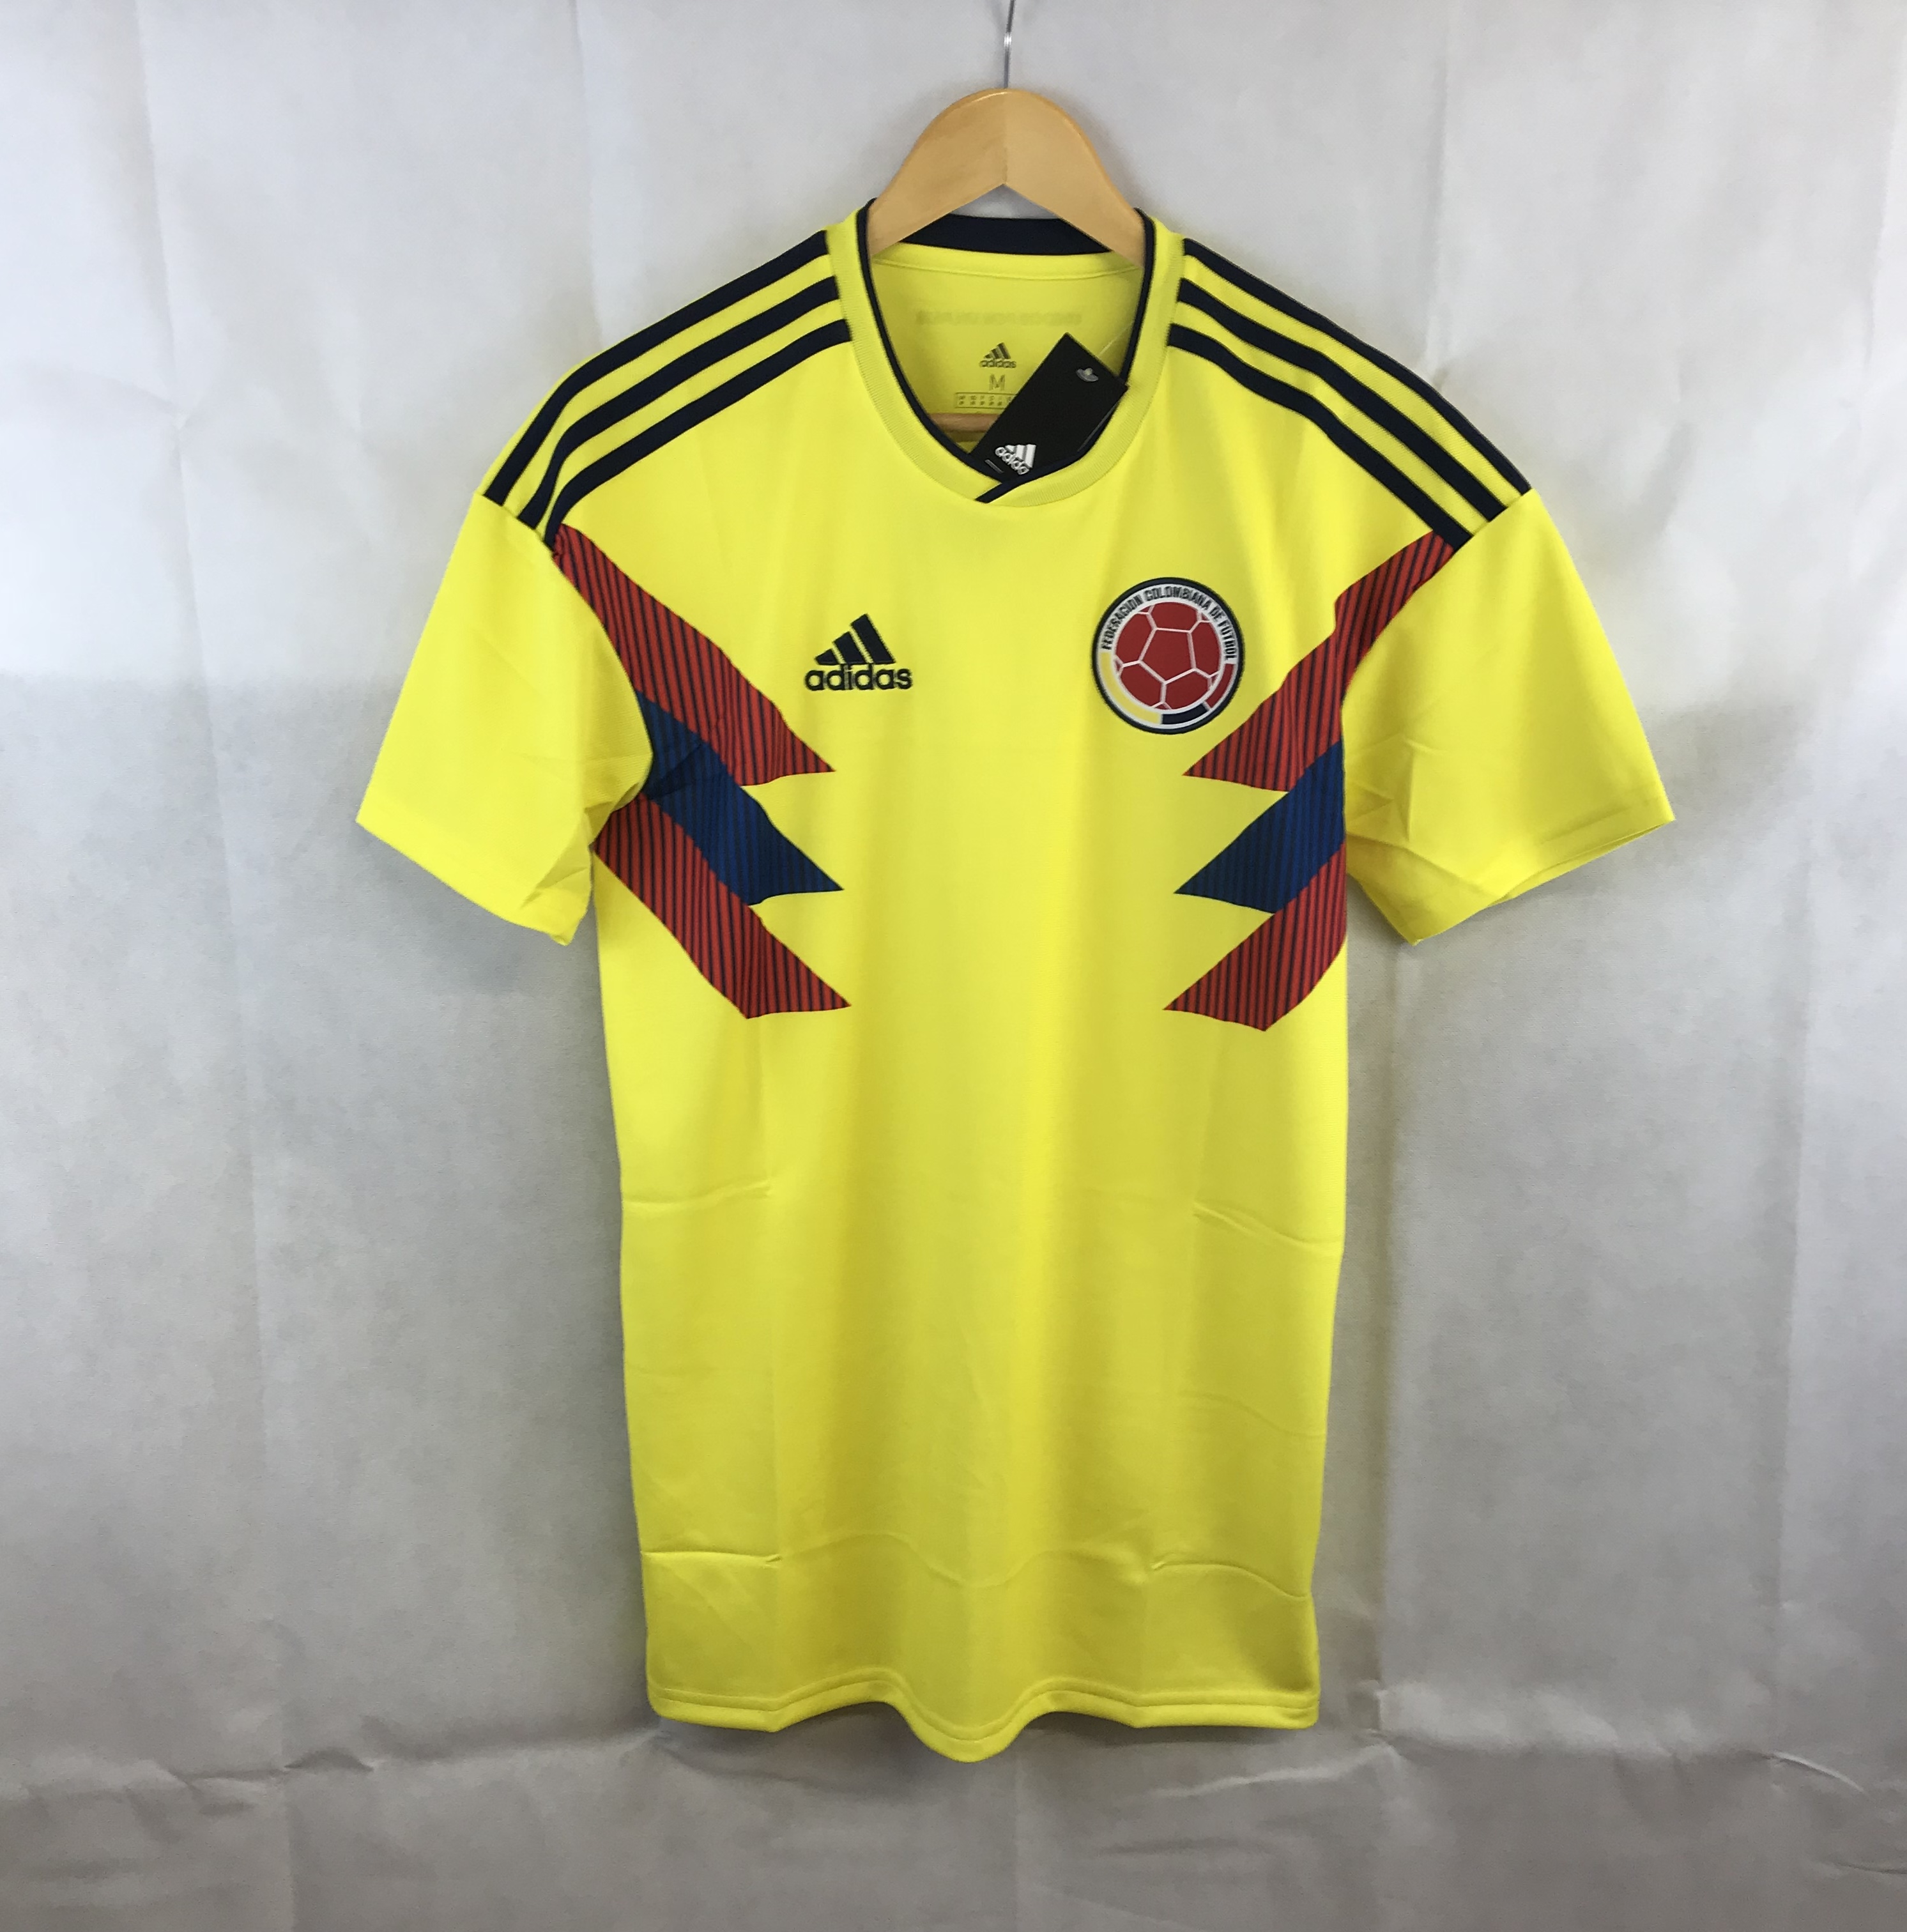 ee89ce1ef Colombia Home Football Shirt 2018 19 Adults Large Adidas – Historic ...